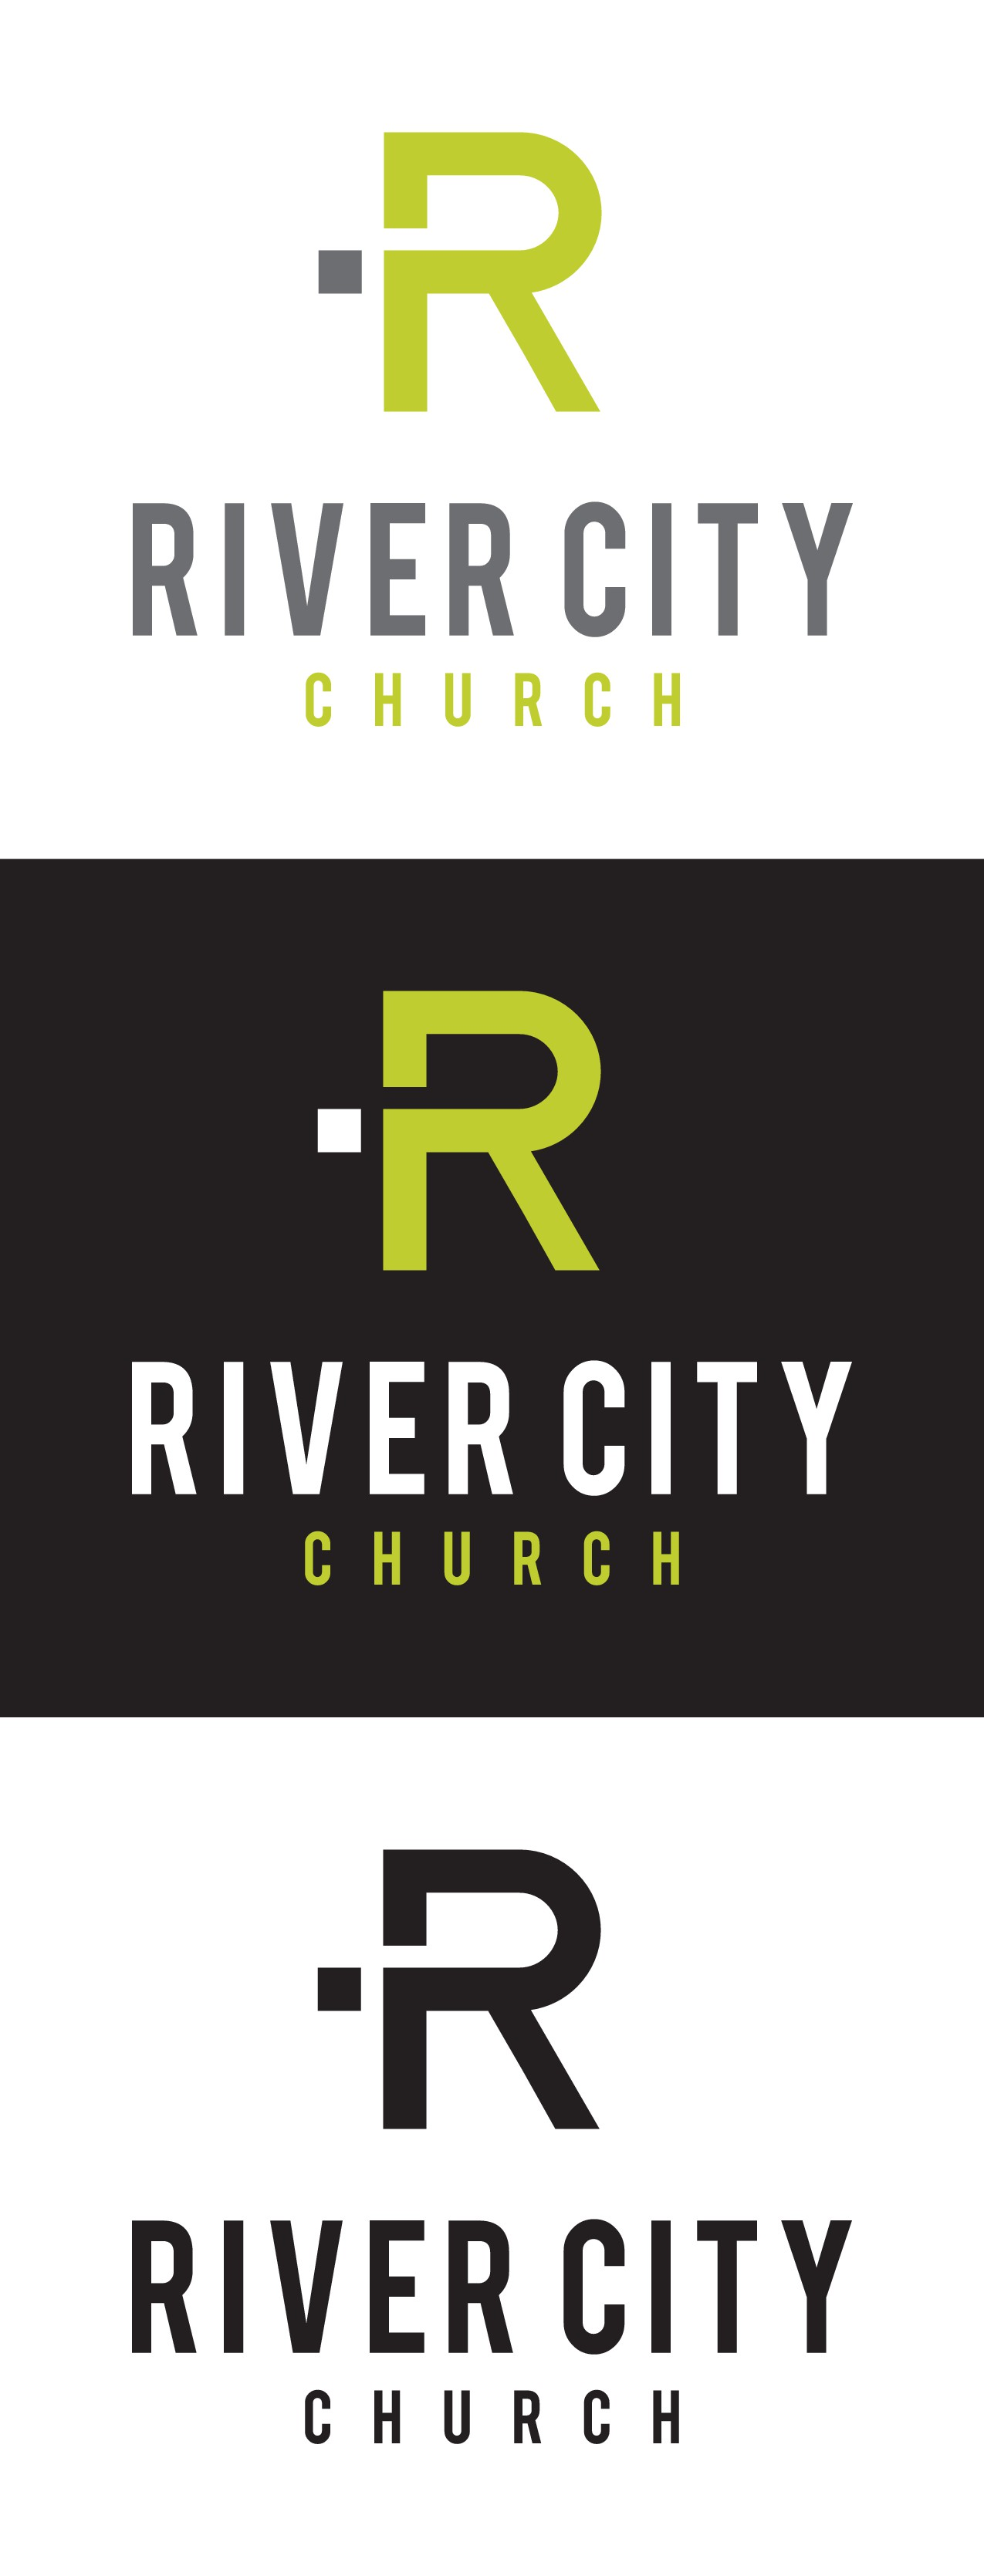 River City Church needs a clean logo